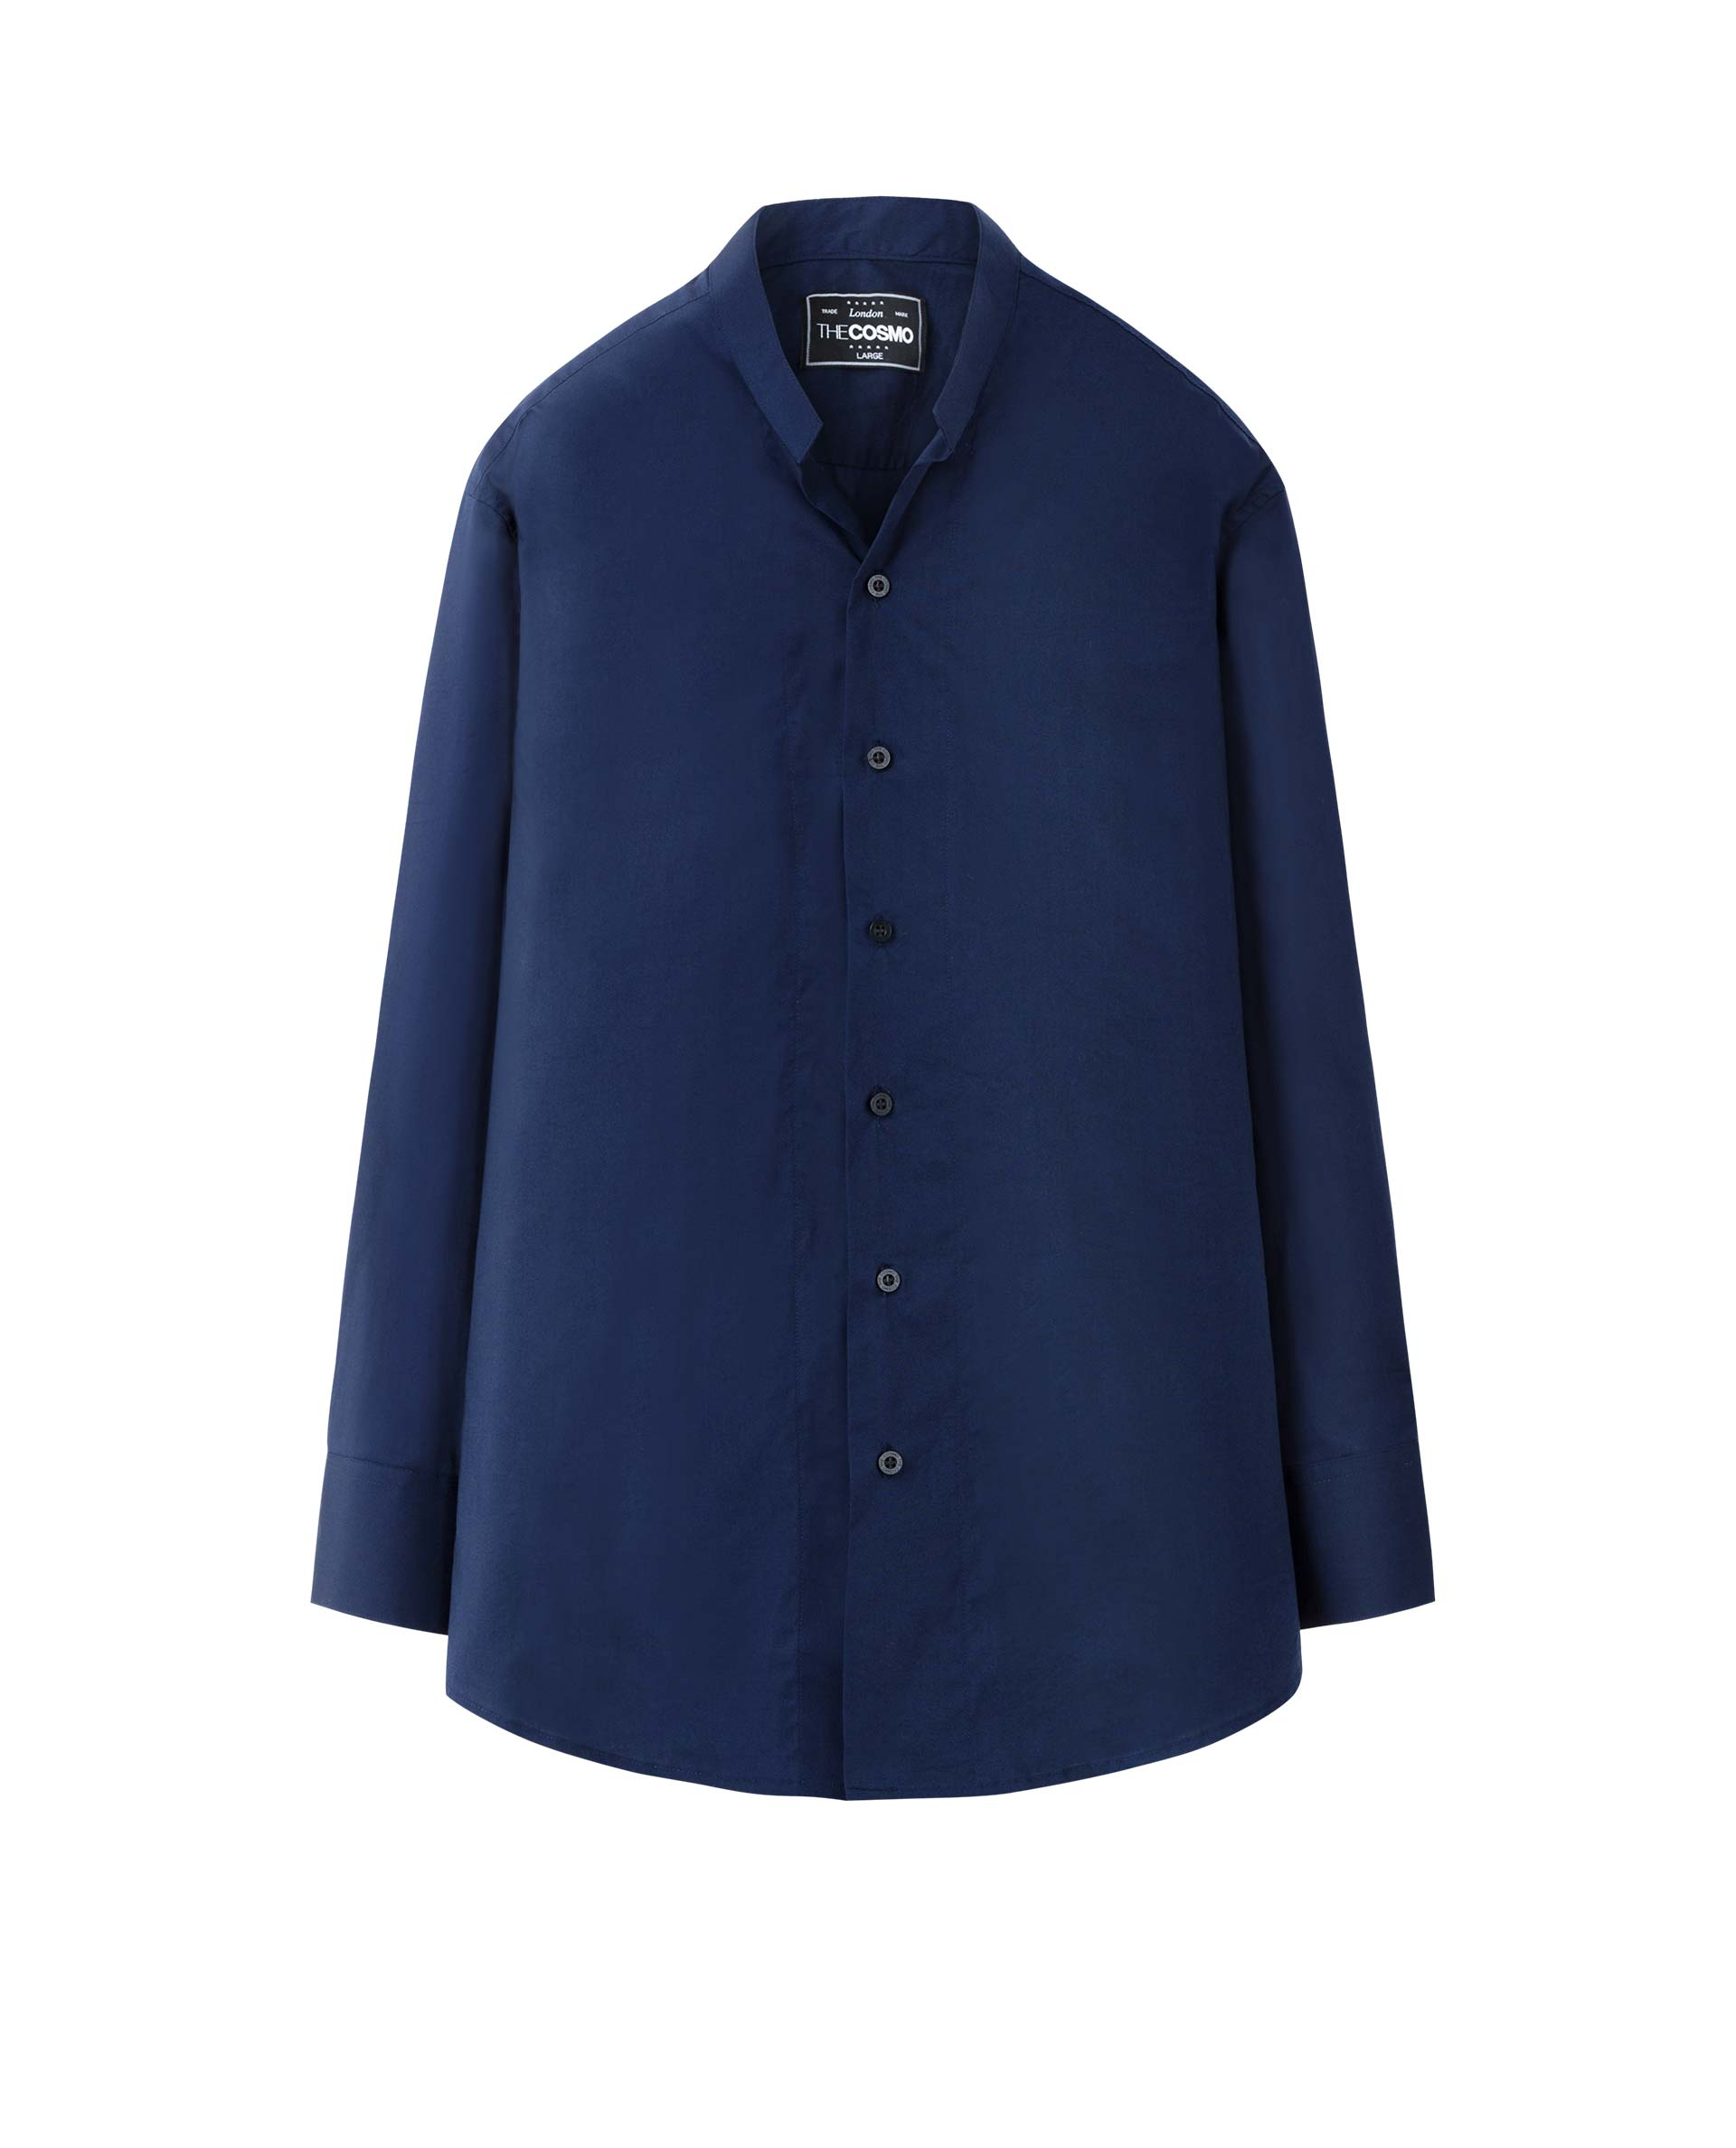 MAO COLLAR SHIRT (NAVY)